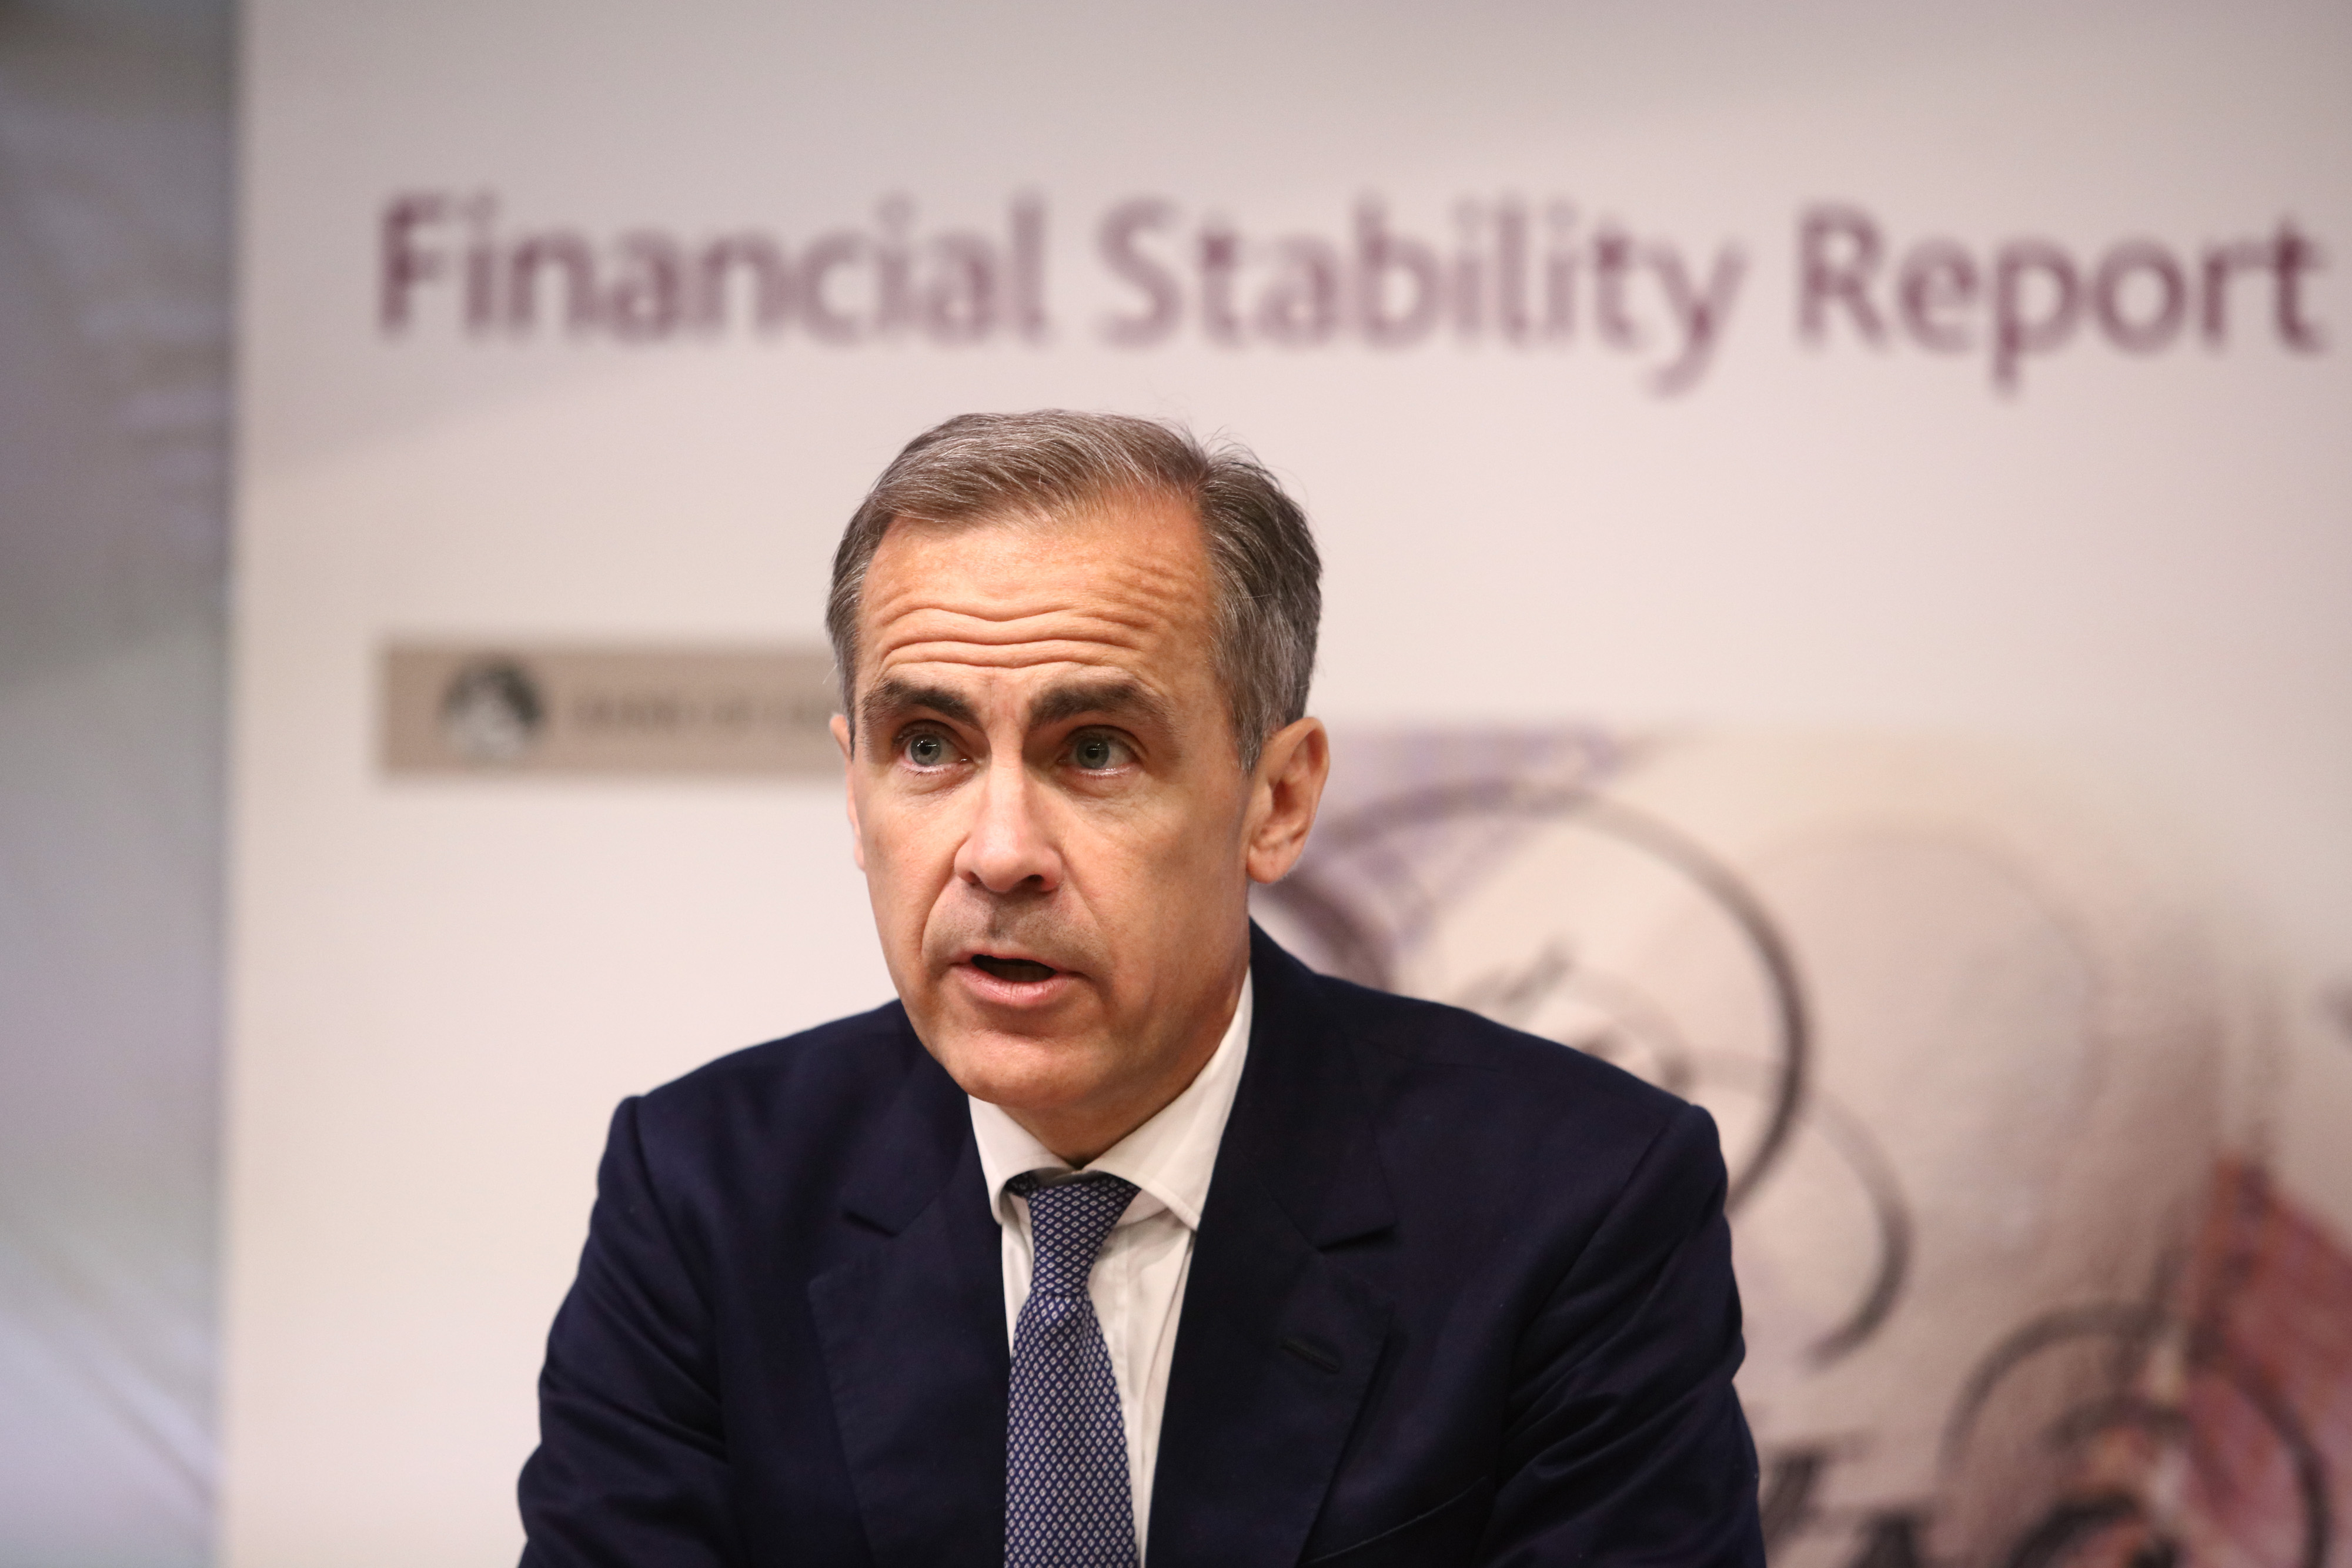 Bank of England Governor Mark Carney Delivers A News Conference On The Banks Financial Stability Report